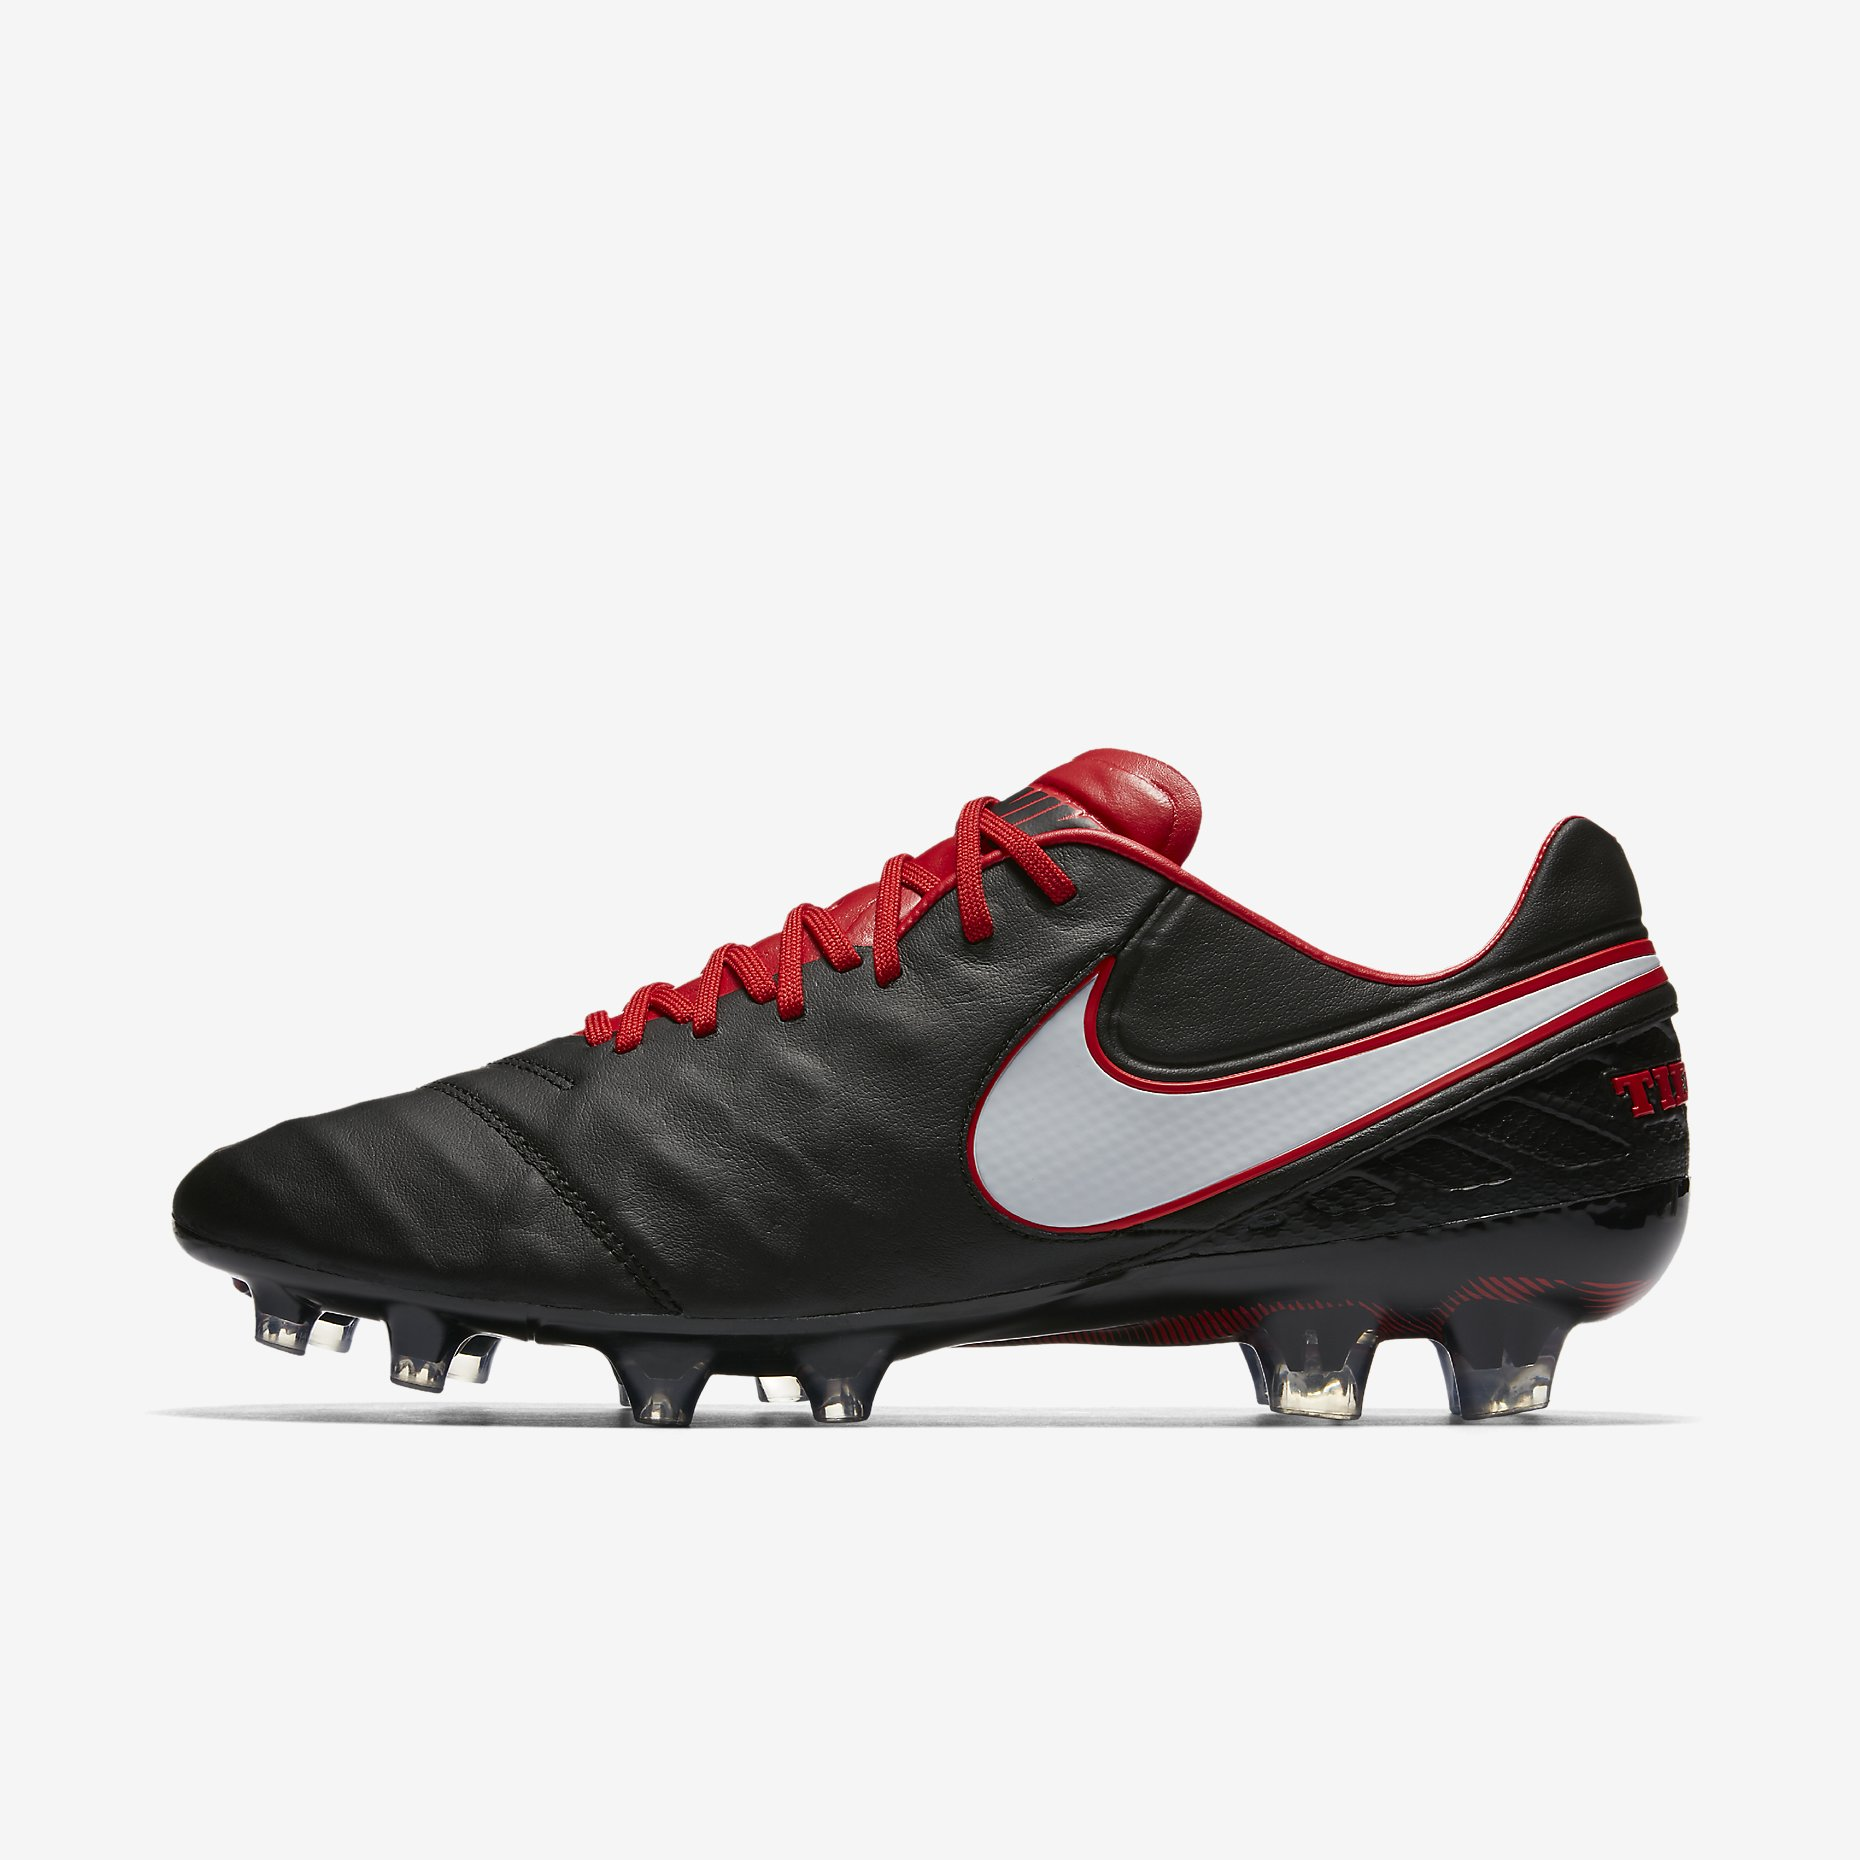 77bc8b972d48 Click to enlarge image  nike tiempo legend vi fg derby days black university red white white a.jpg  ...